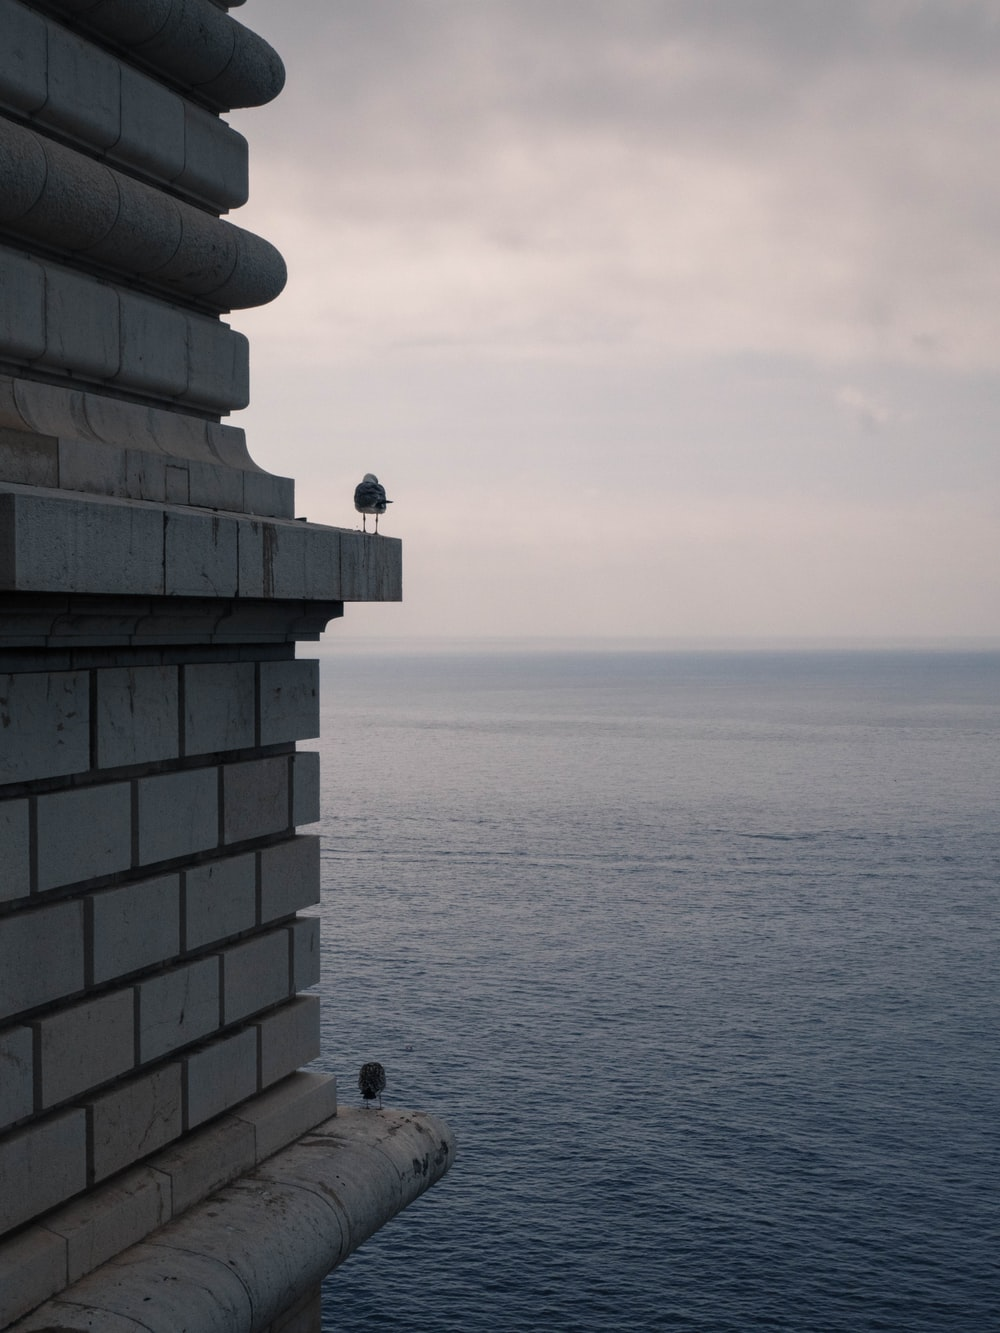 person sitting on concrete building near sea during daytime